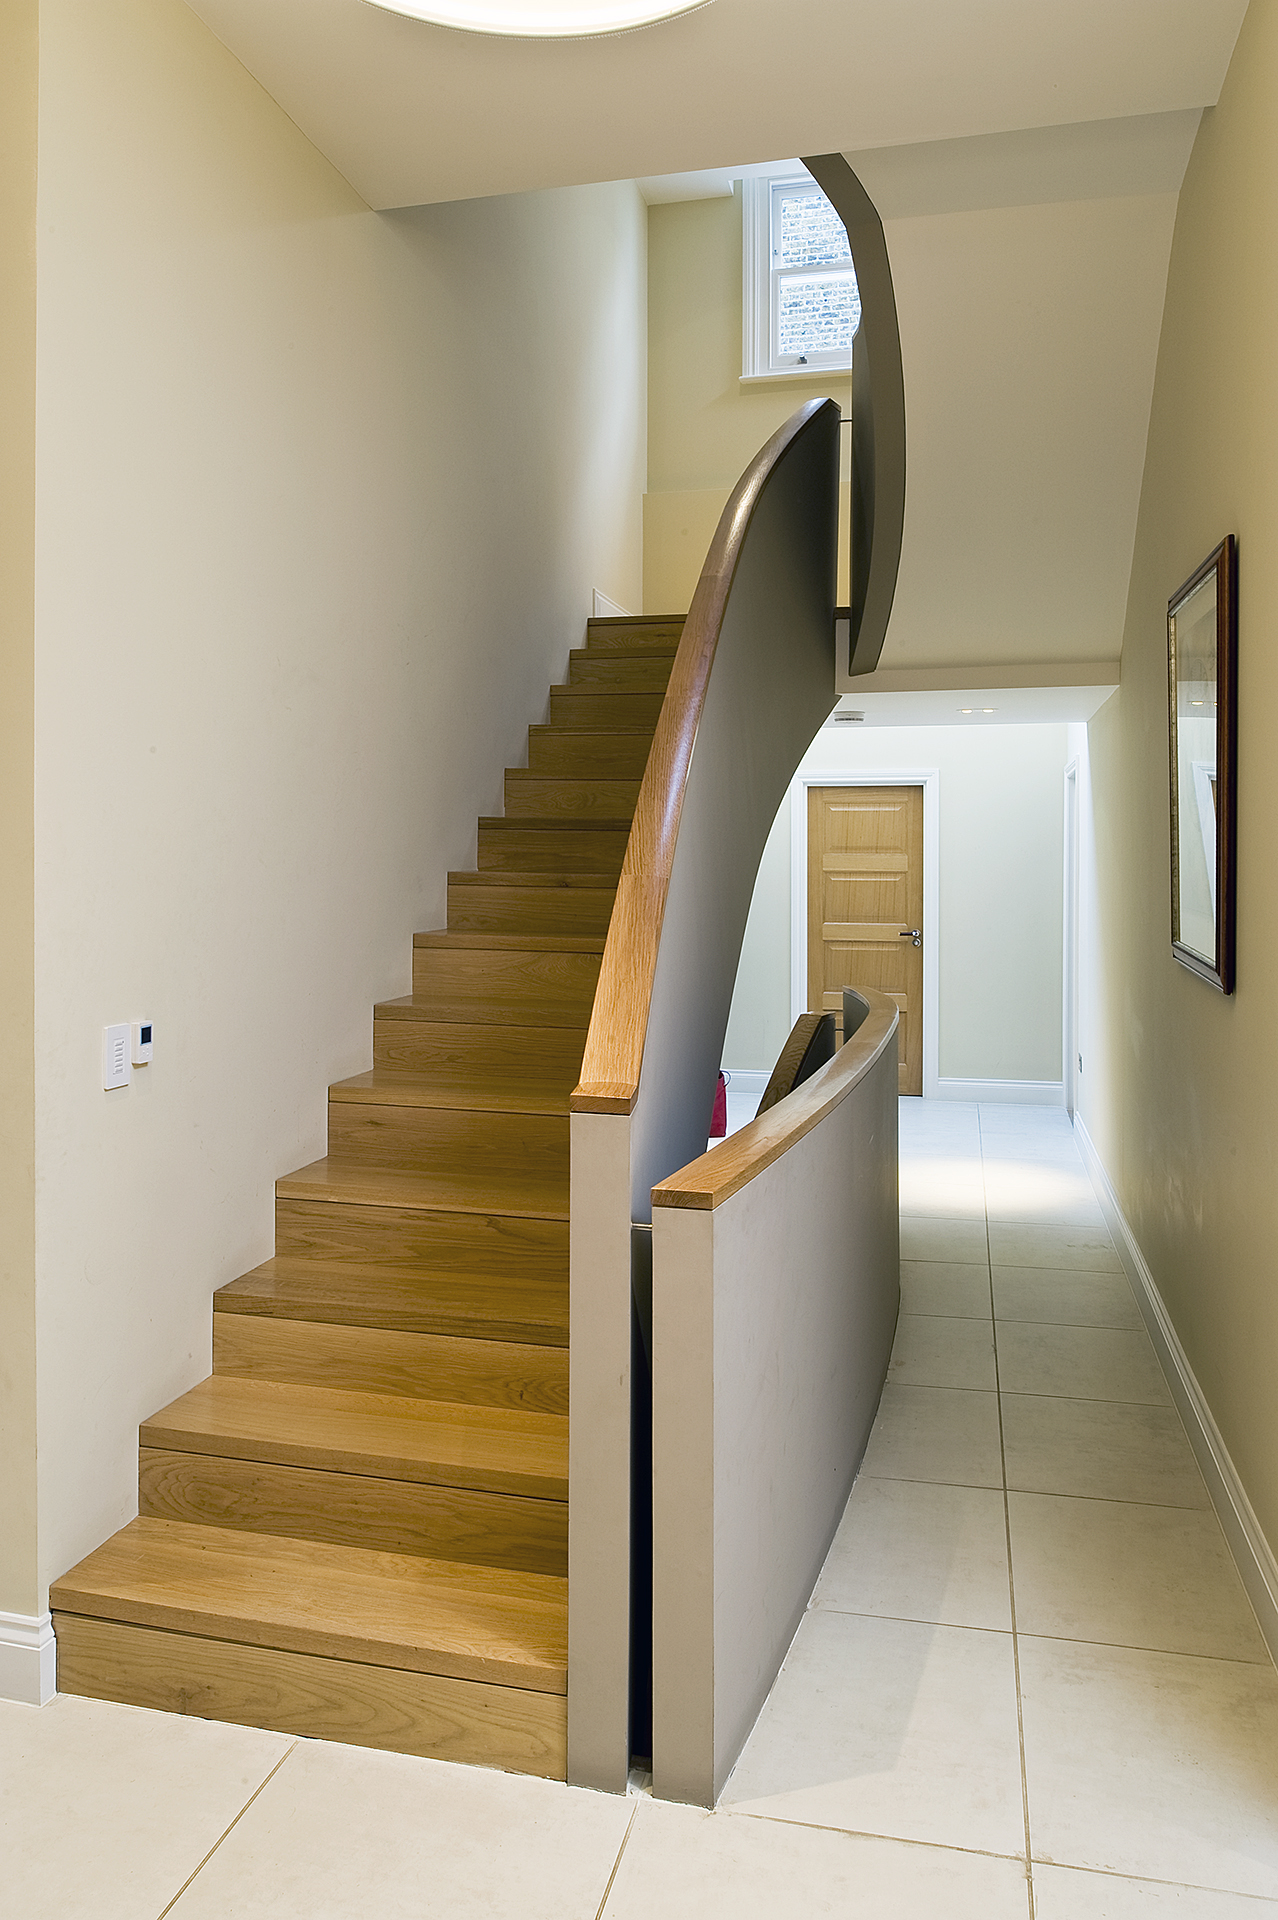 creativemass - bespoke staircase design, residential interior design